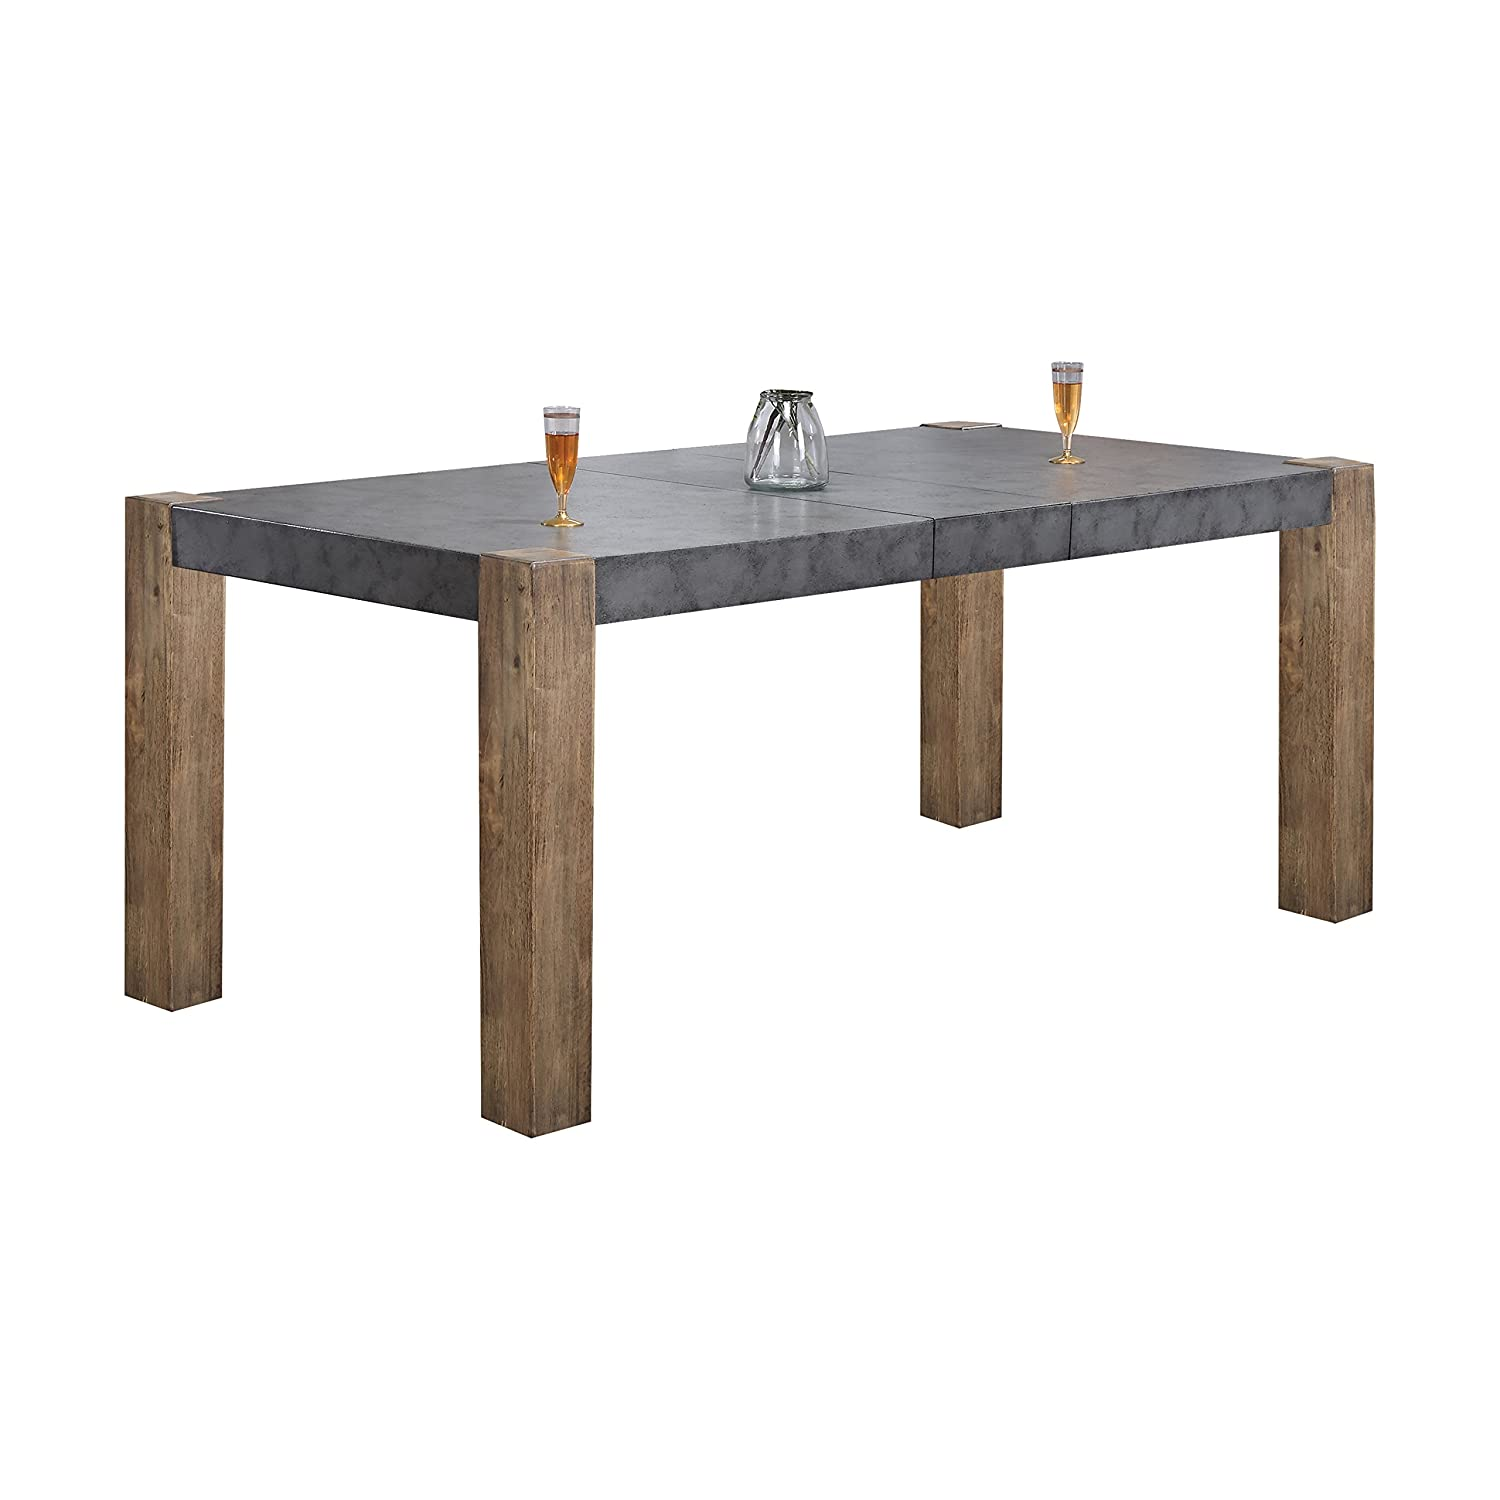 Amazon com acme furniture paulina ii dining table dark gray and rustic oak tables